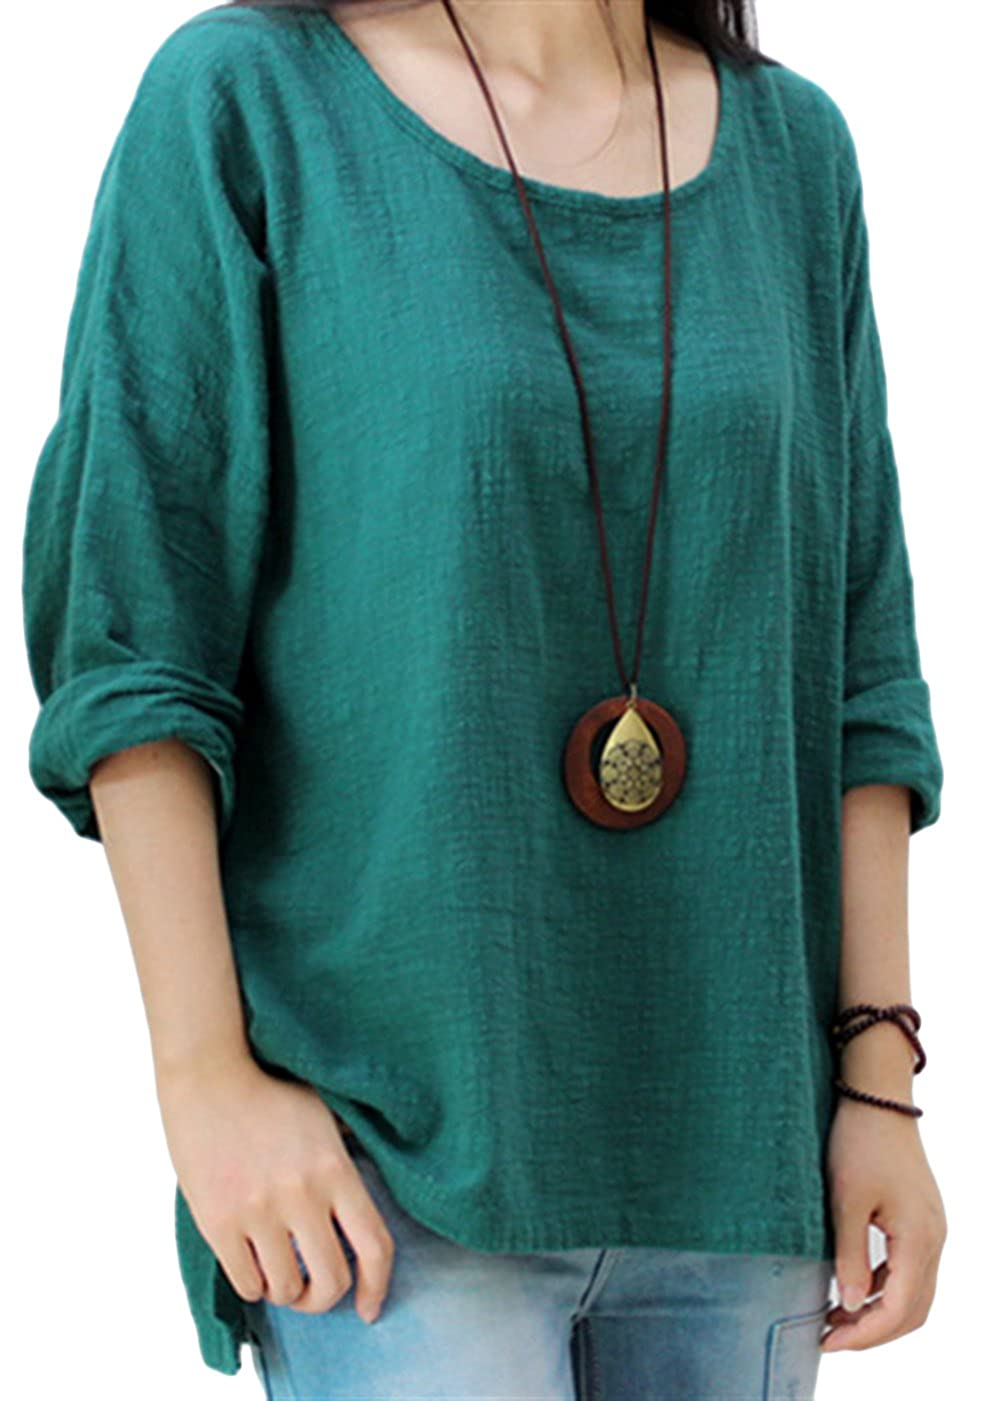 4f0eeec165 65% Cotton+35% Linen Pull On closure. Material  Cotton and Linen Blend.So  the Casual Blouse is Soft